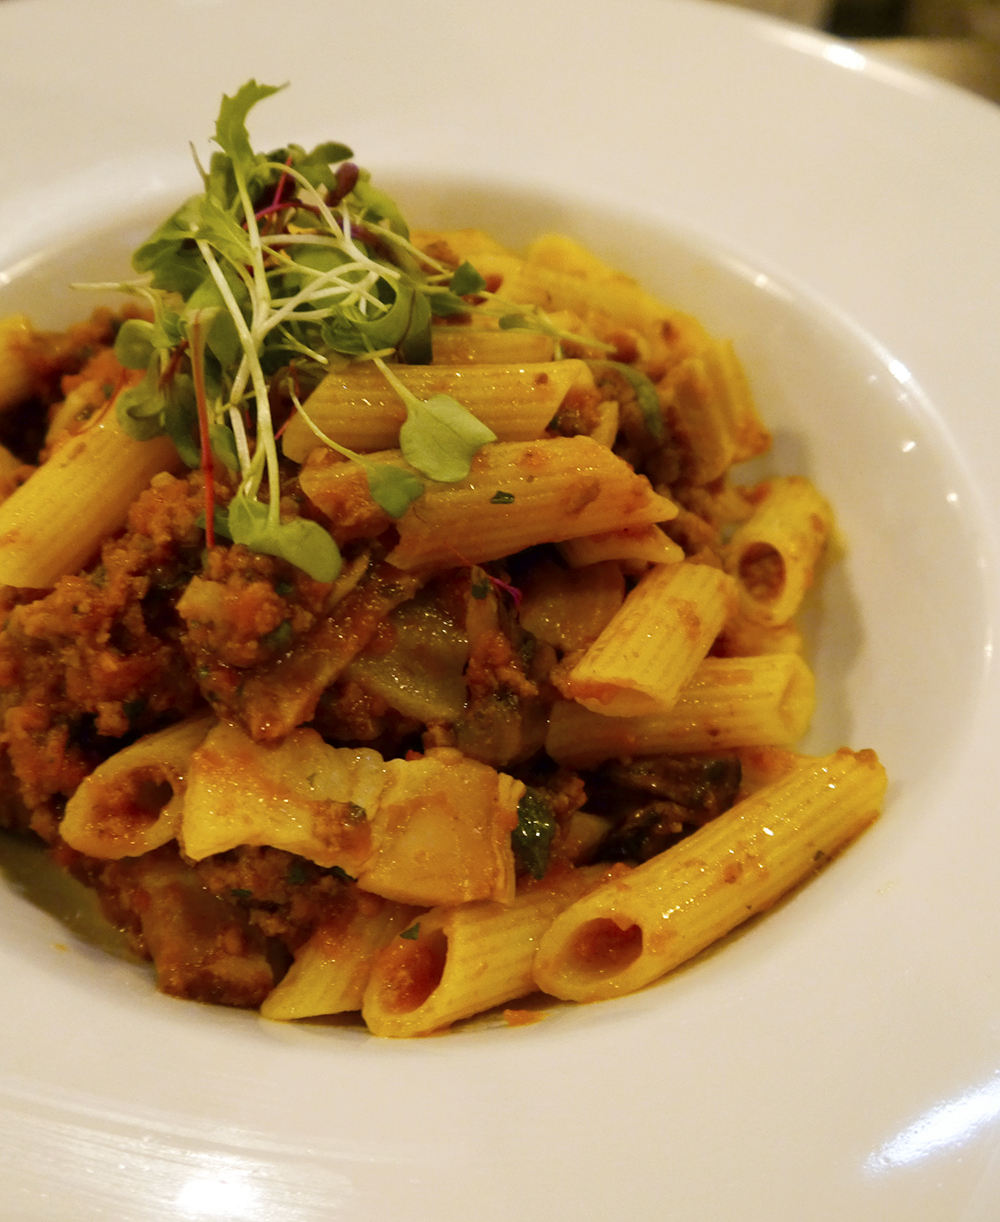 Review of Italian Grill restaurant in Dundee for gluten free options